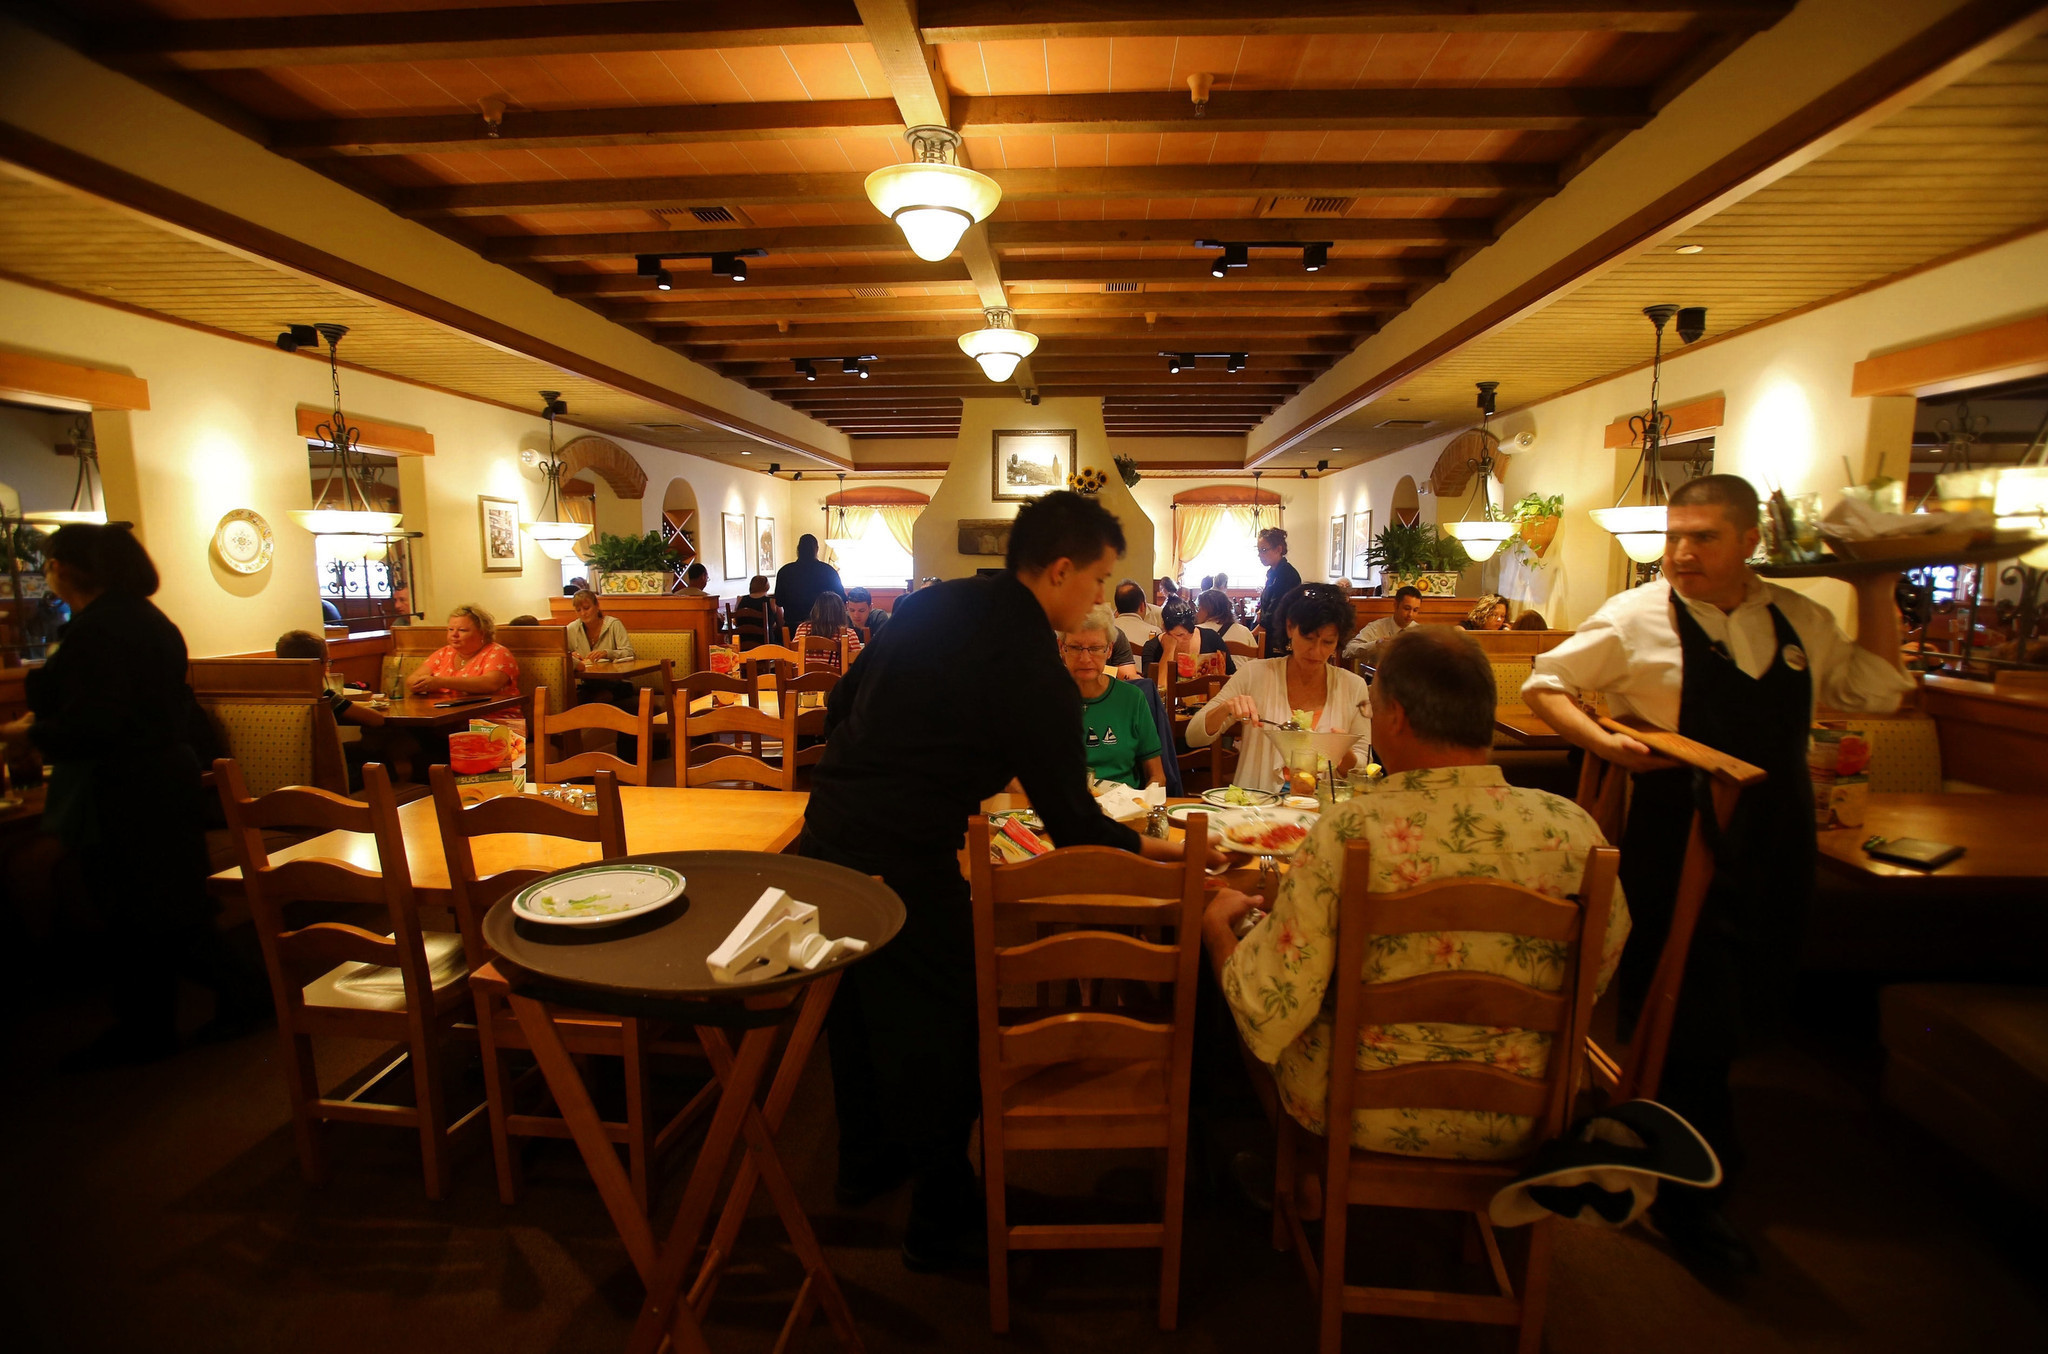 olive gardens latest cost cutting plan clean carpet less often chicago tribune - Olive Garden New York